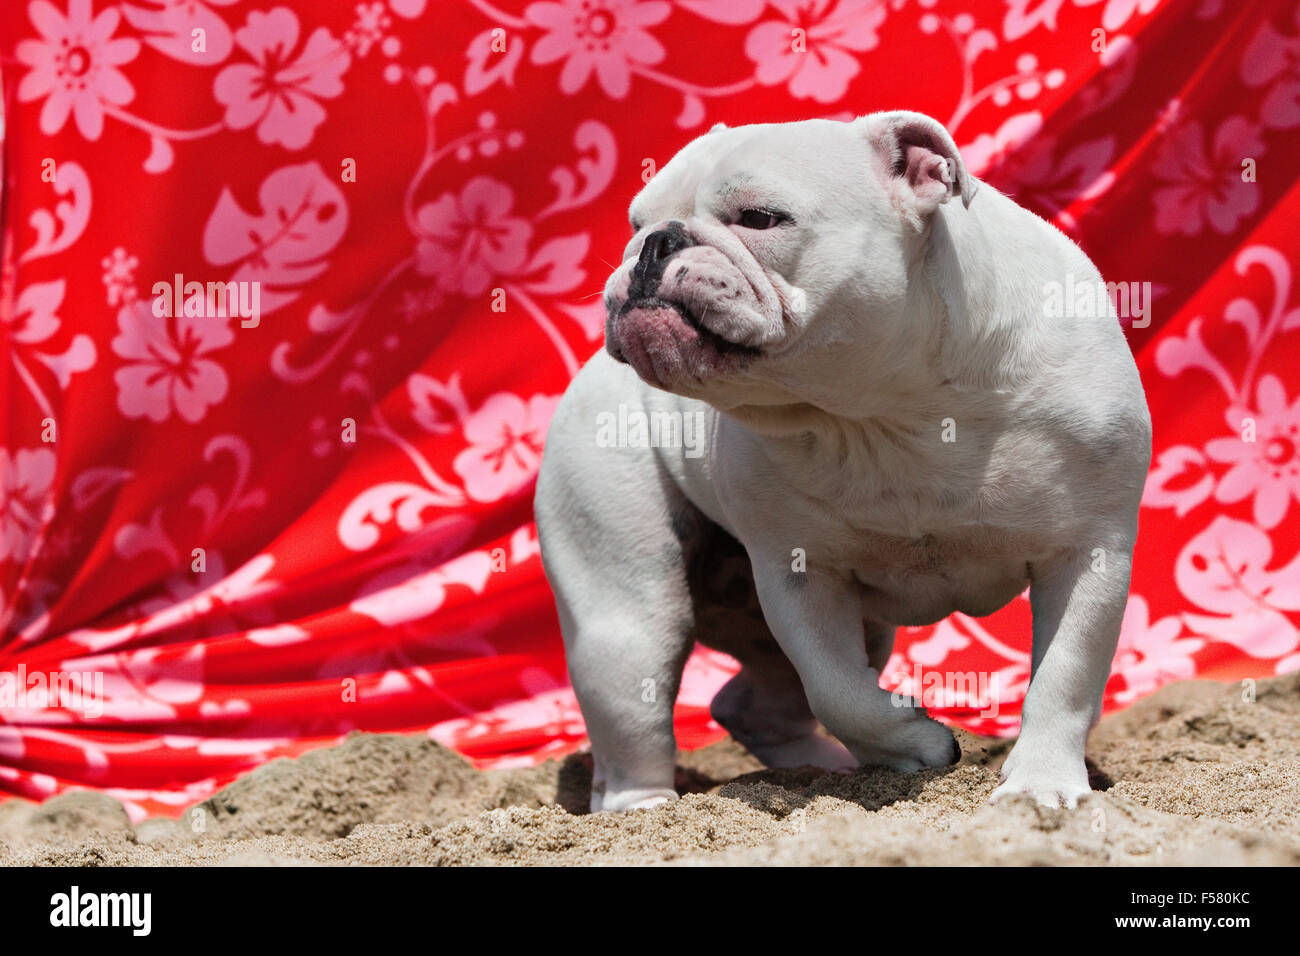 Full body of white Bulldog walking in sand at beach in front of orange floral print draped fabric looking like a - Stock Image